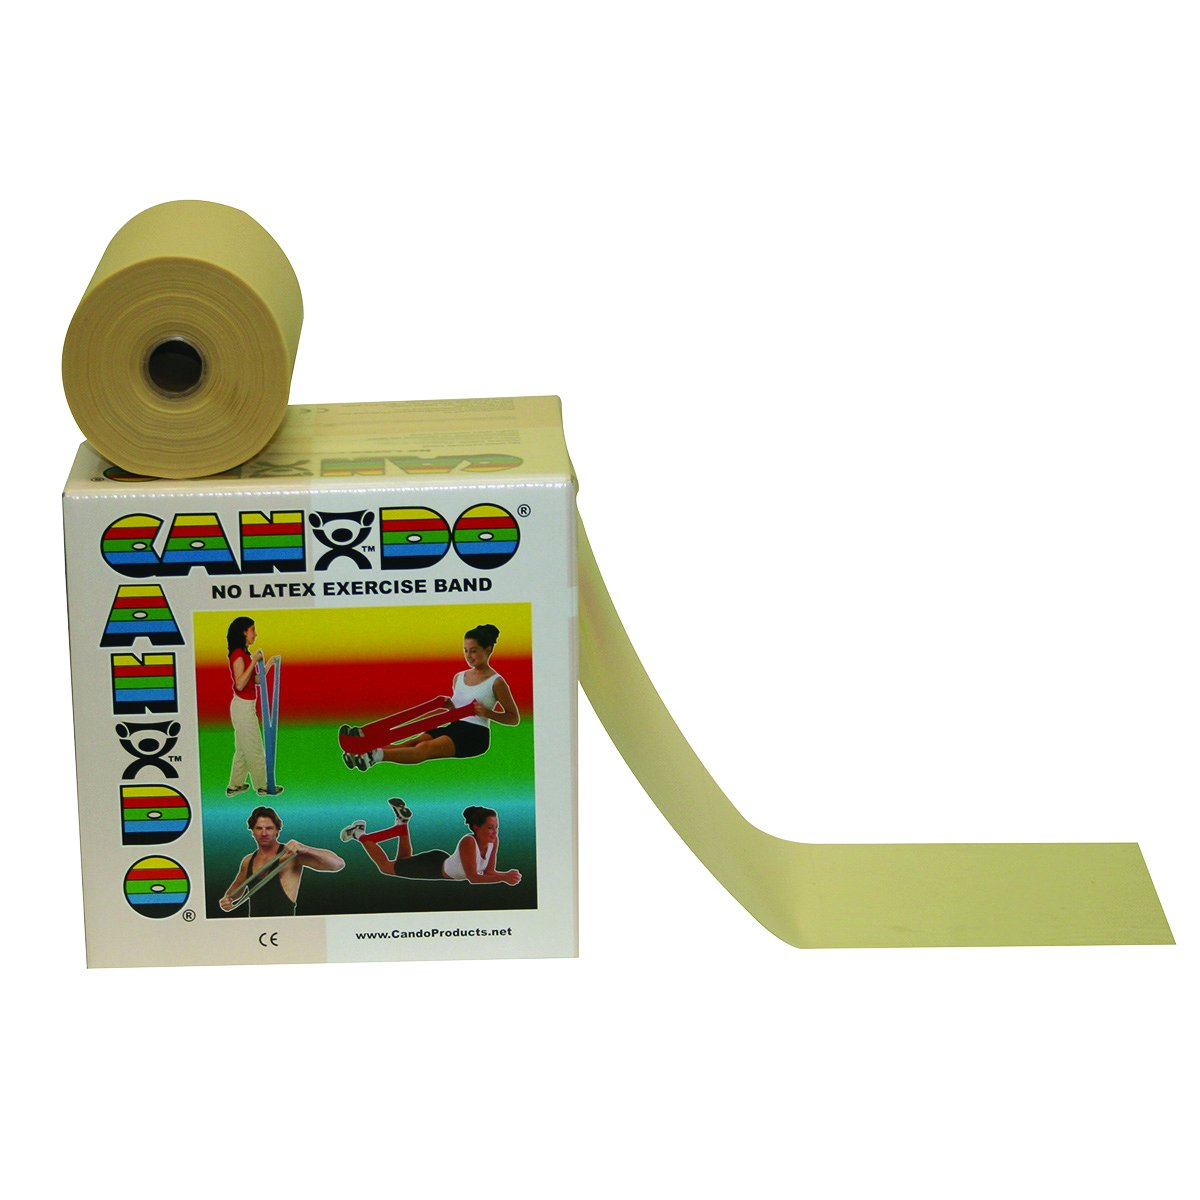 Cando 10-5620 Tan Latex-Free Exercise Band, XX-Light Resistance, 50 yd Length